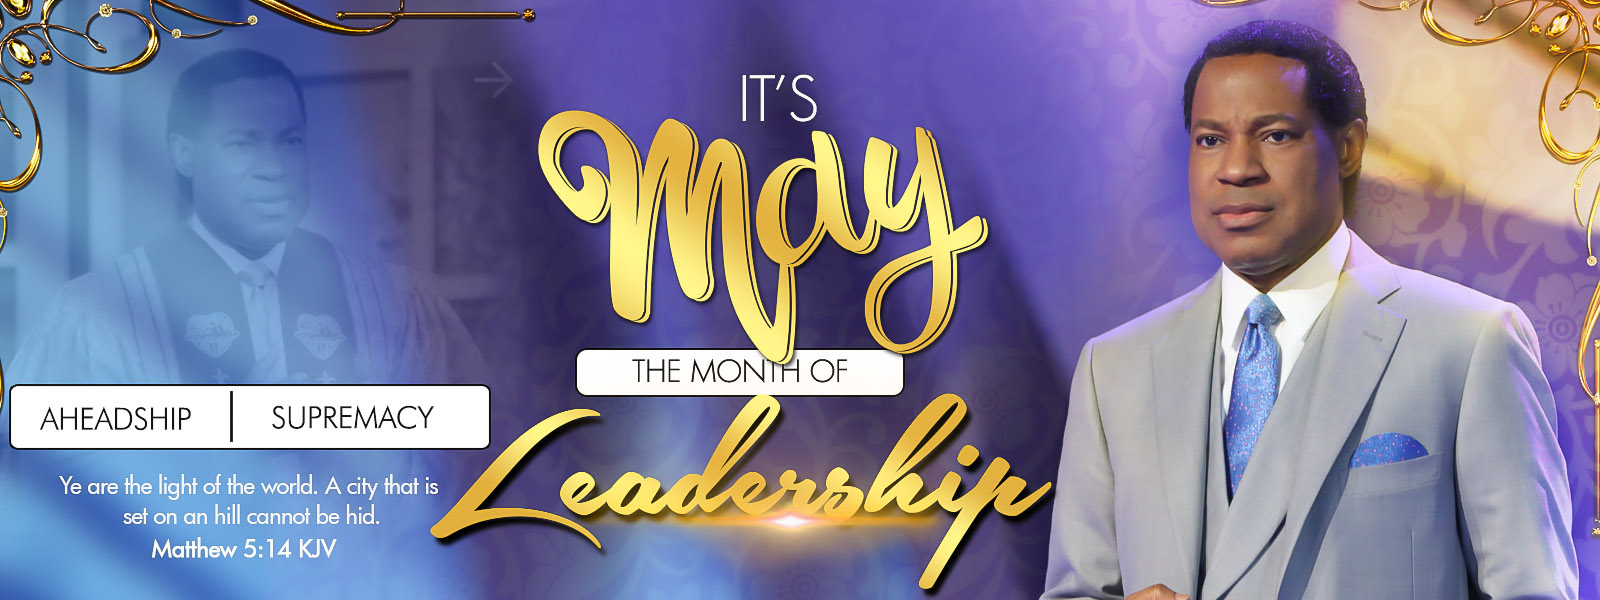 Welcome to the Month of Leadership